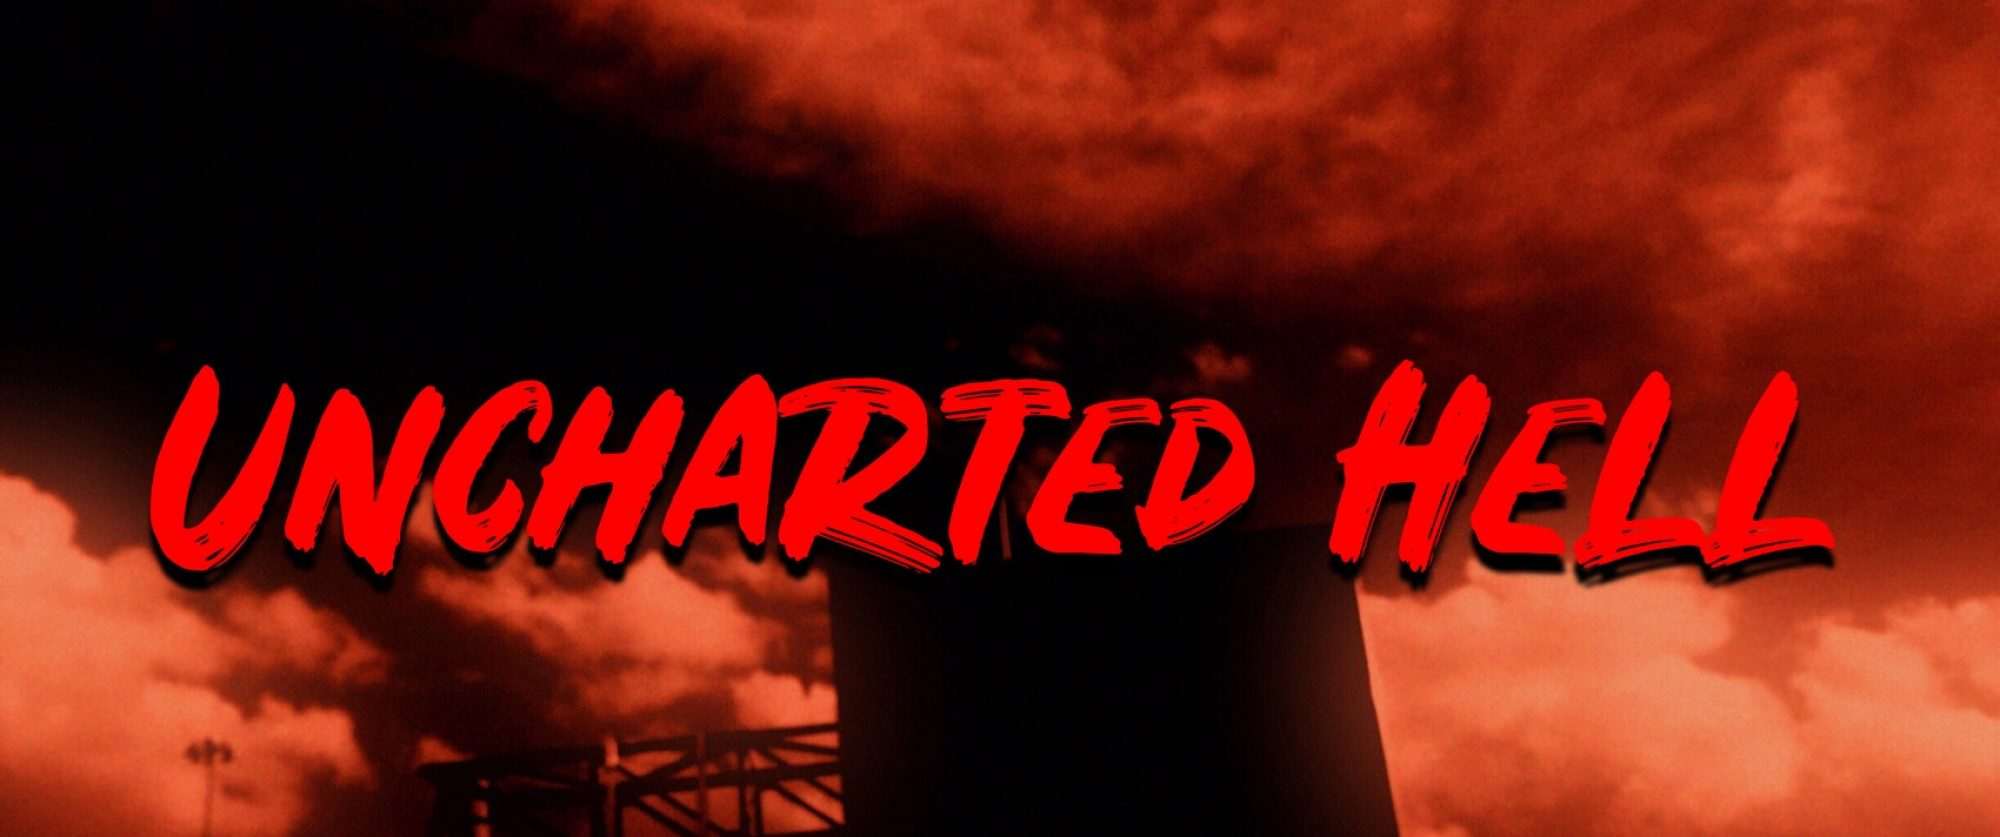 Uncharted Hell